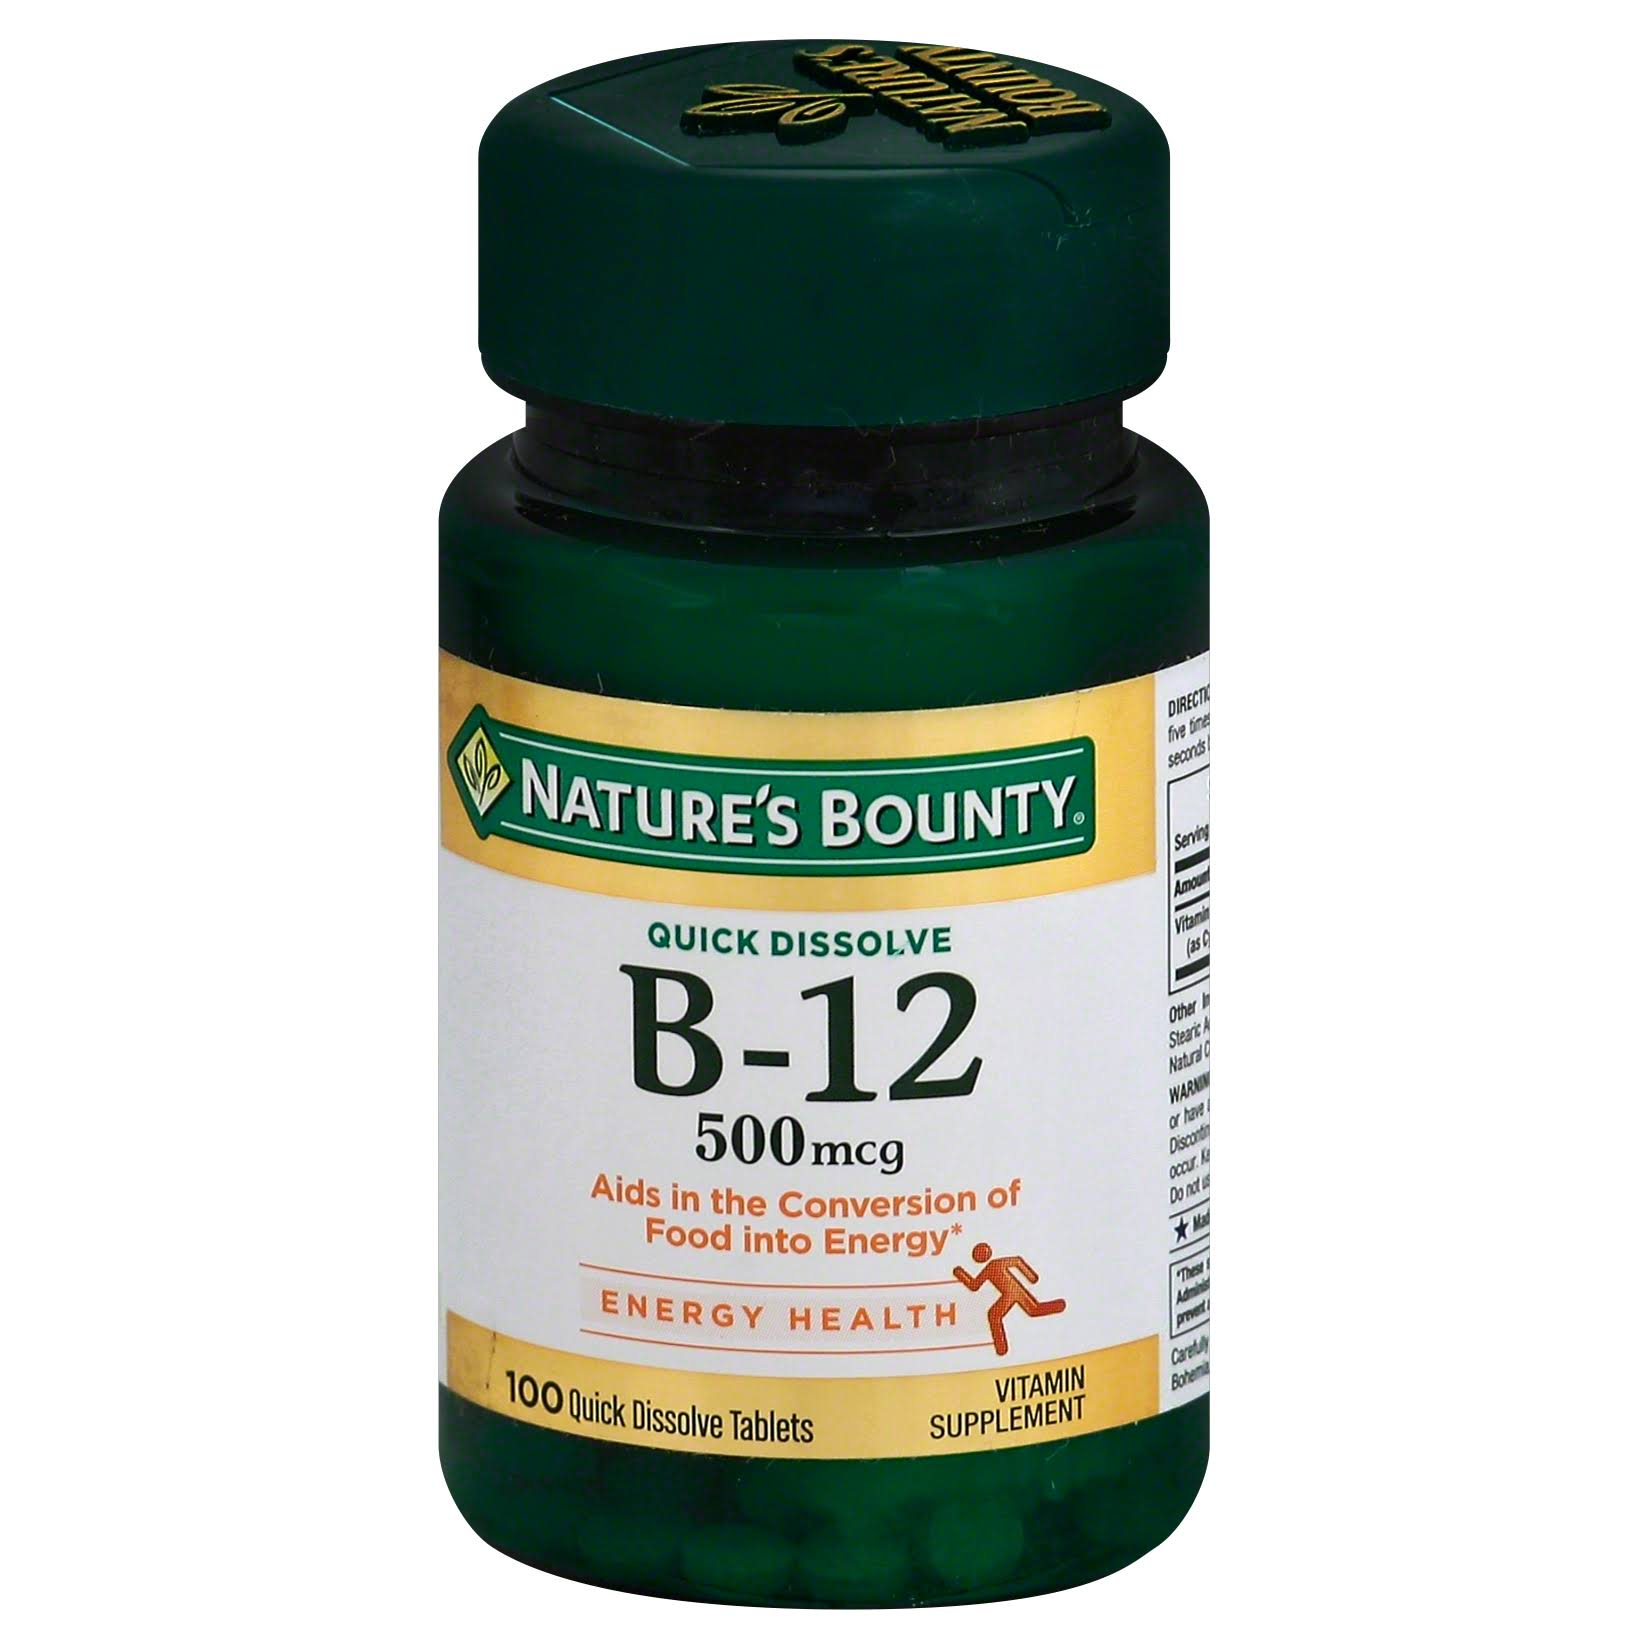 Nature's Bounty B-12 Sublingual Vitamin Supplement Microlozenges - Natural Cherry, 500mcg, x100